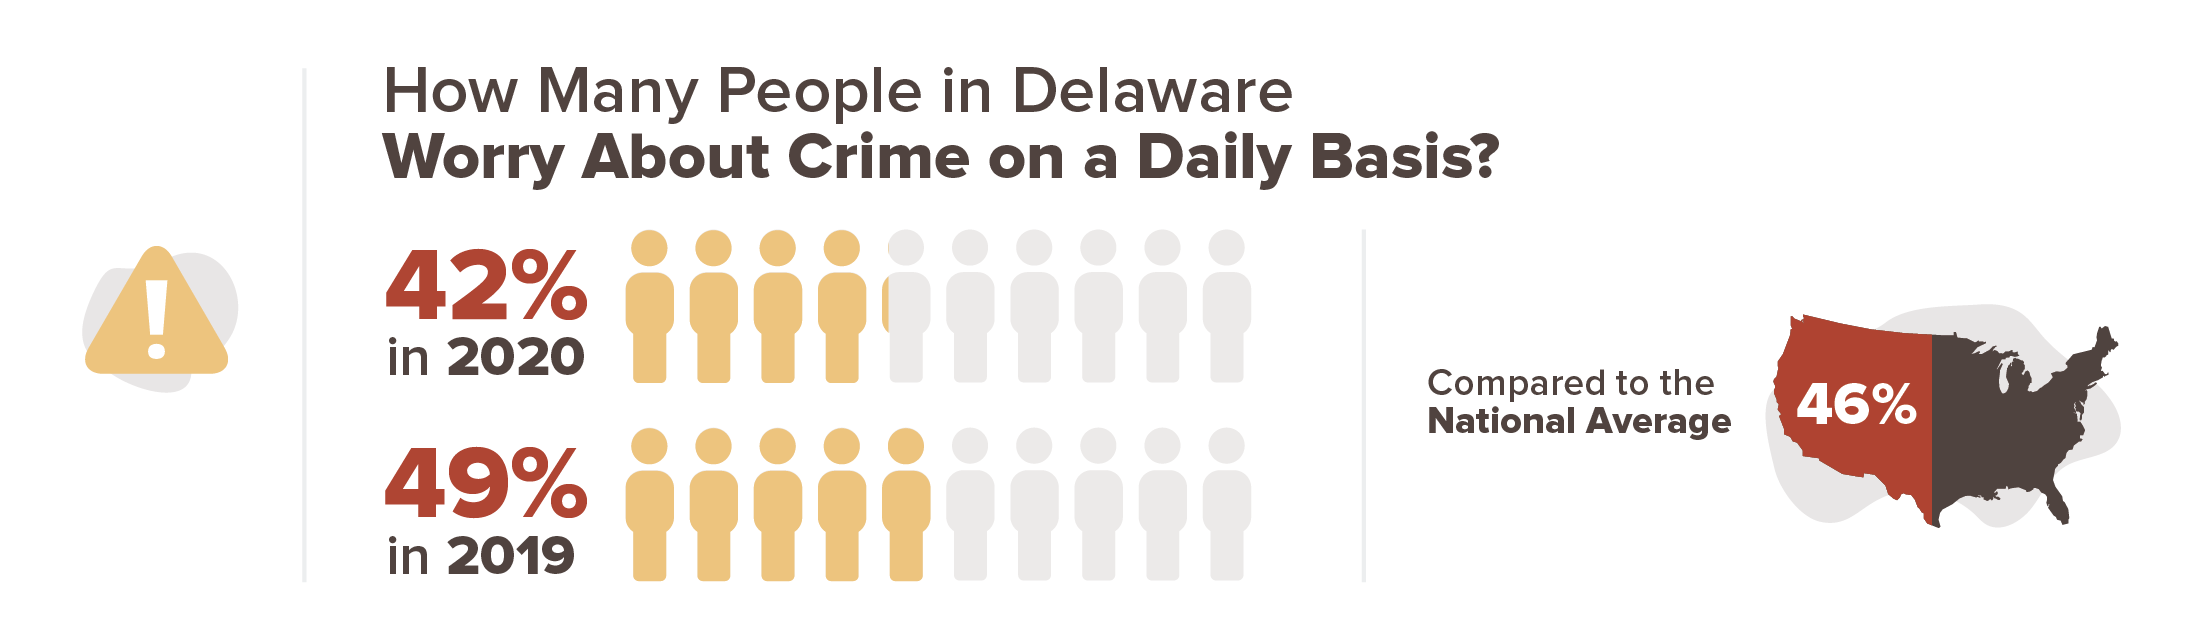 Delaware crime stats infographic